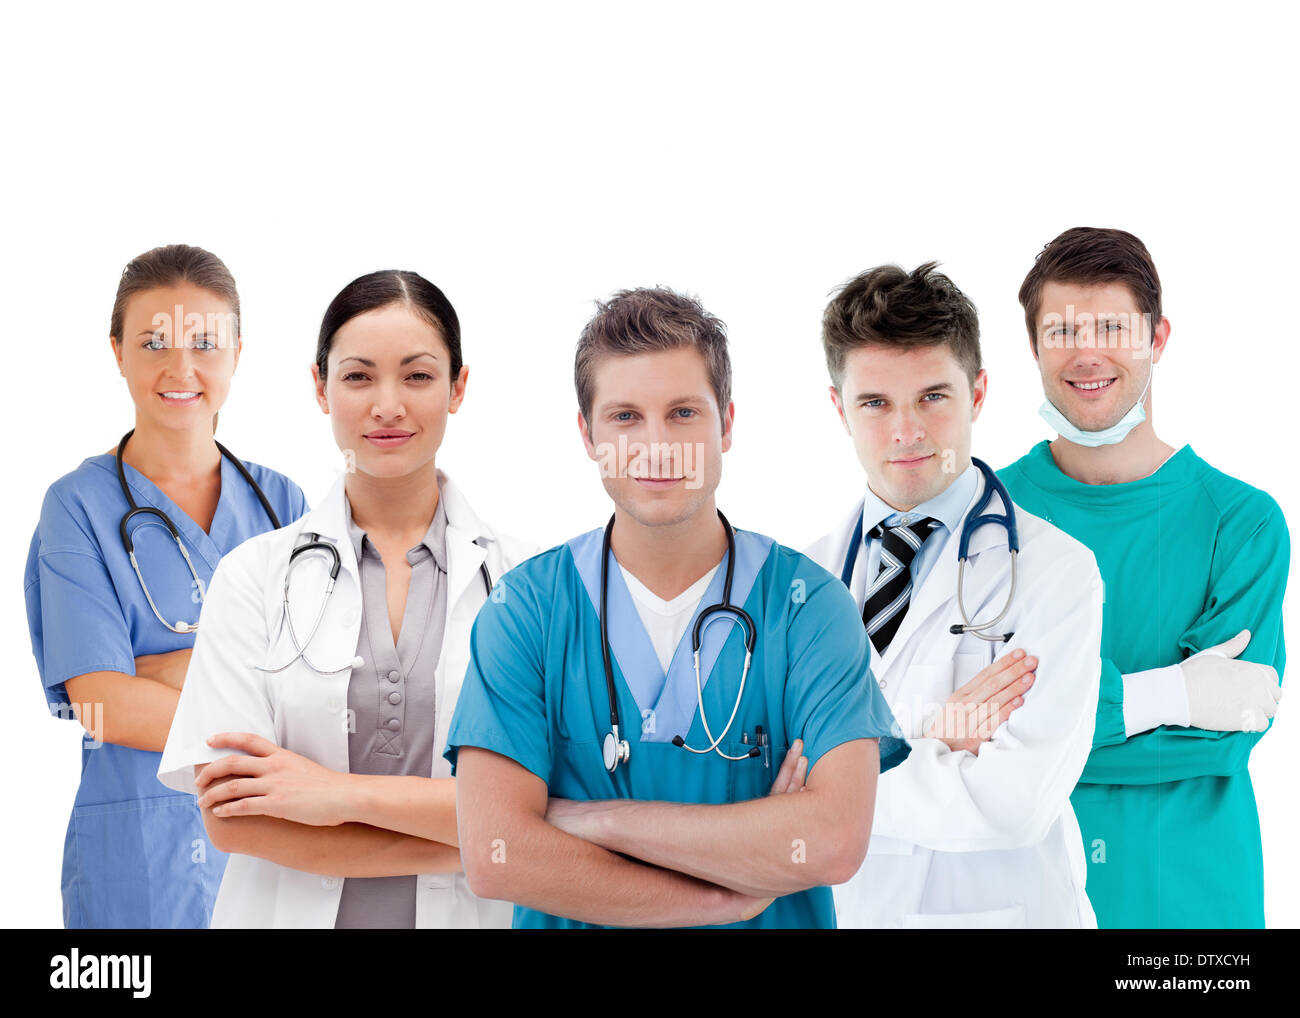 Group of hospital workers standing in line - Stock Image